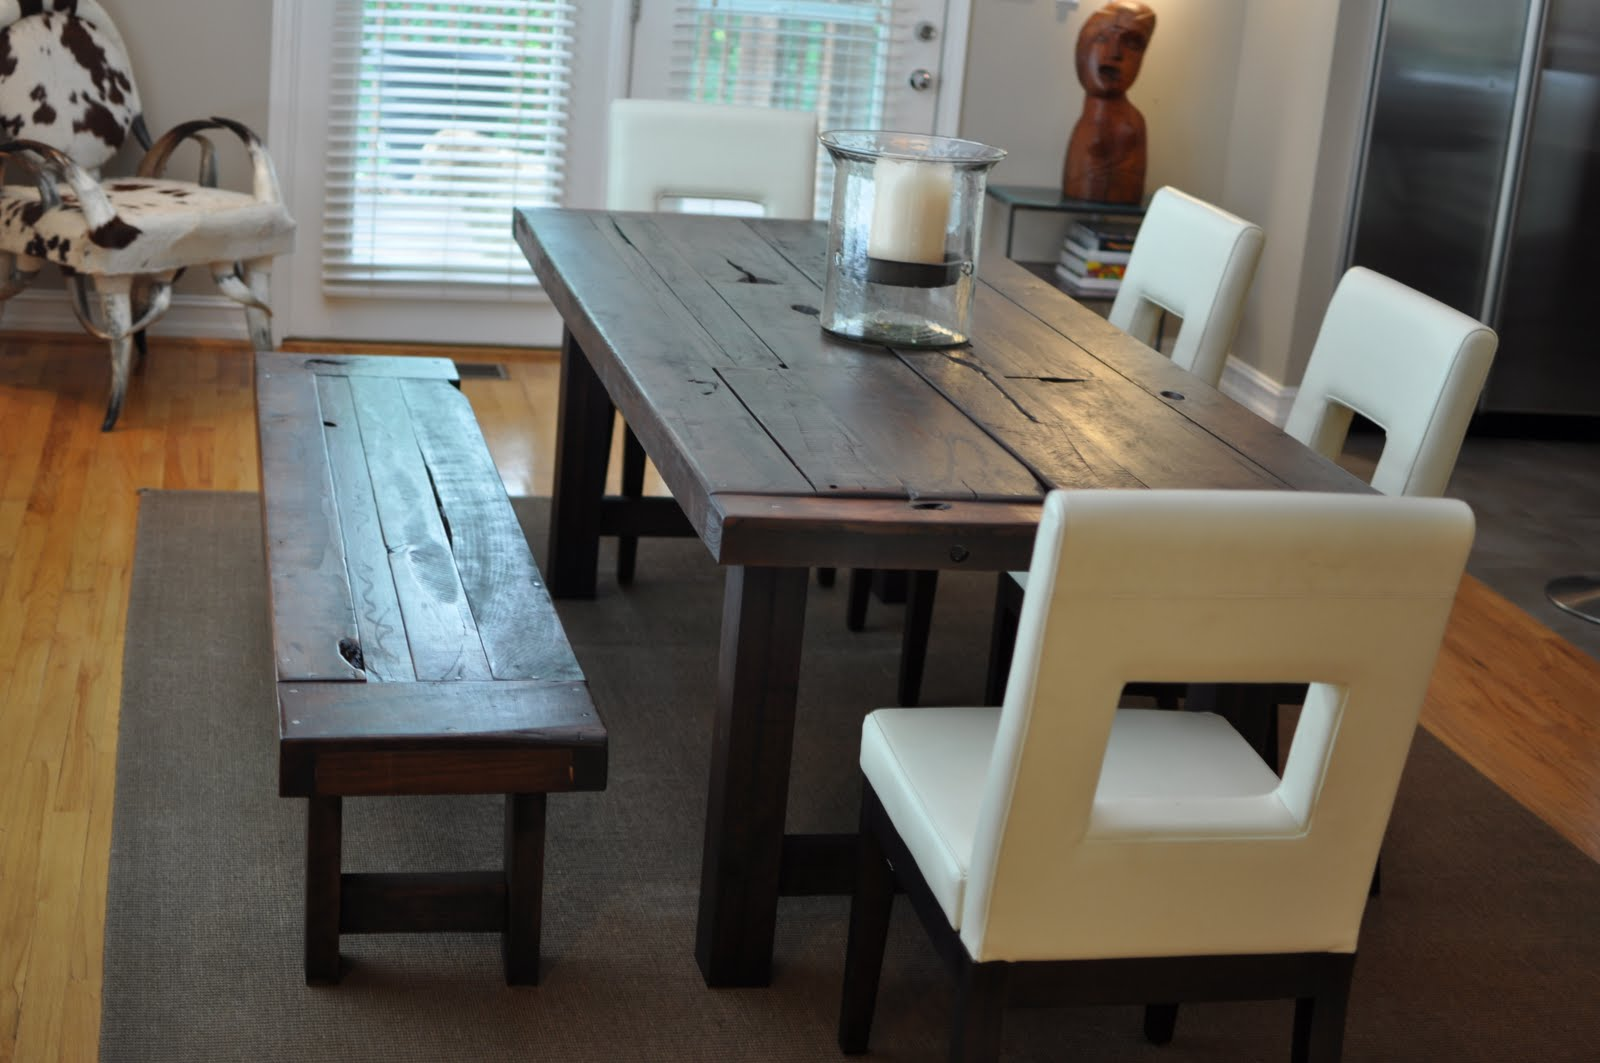 The Clayton Dining Table Atlanta Georgia Rustic Trades Furniture - Distressed dark wood dining table